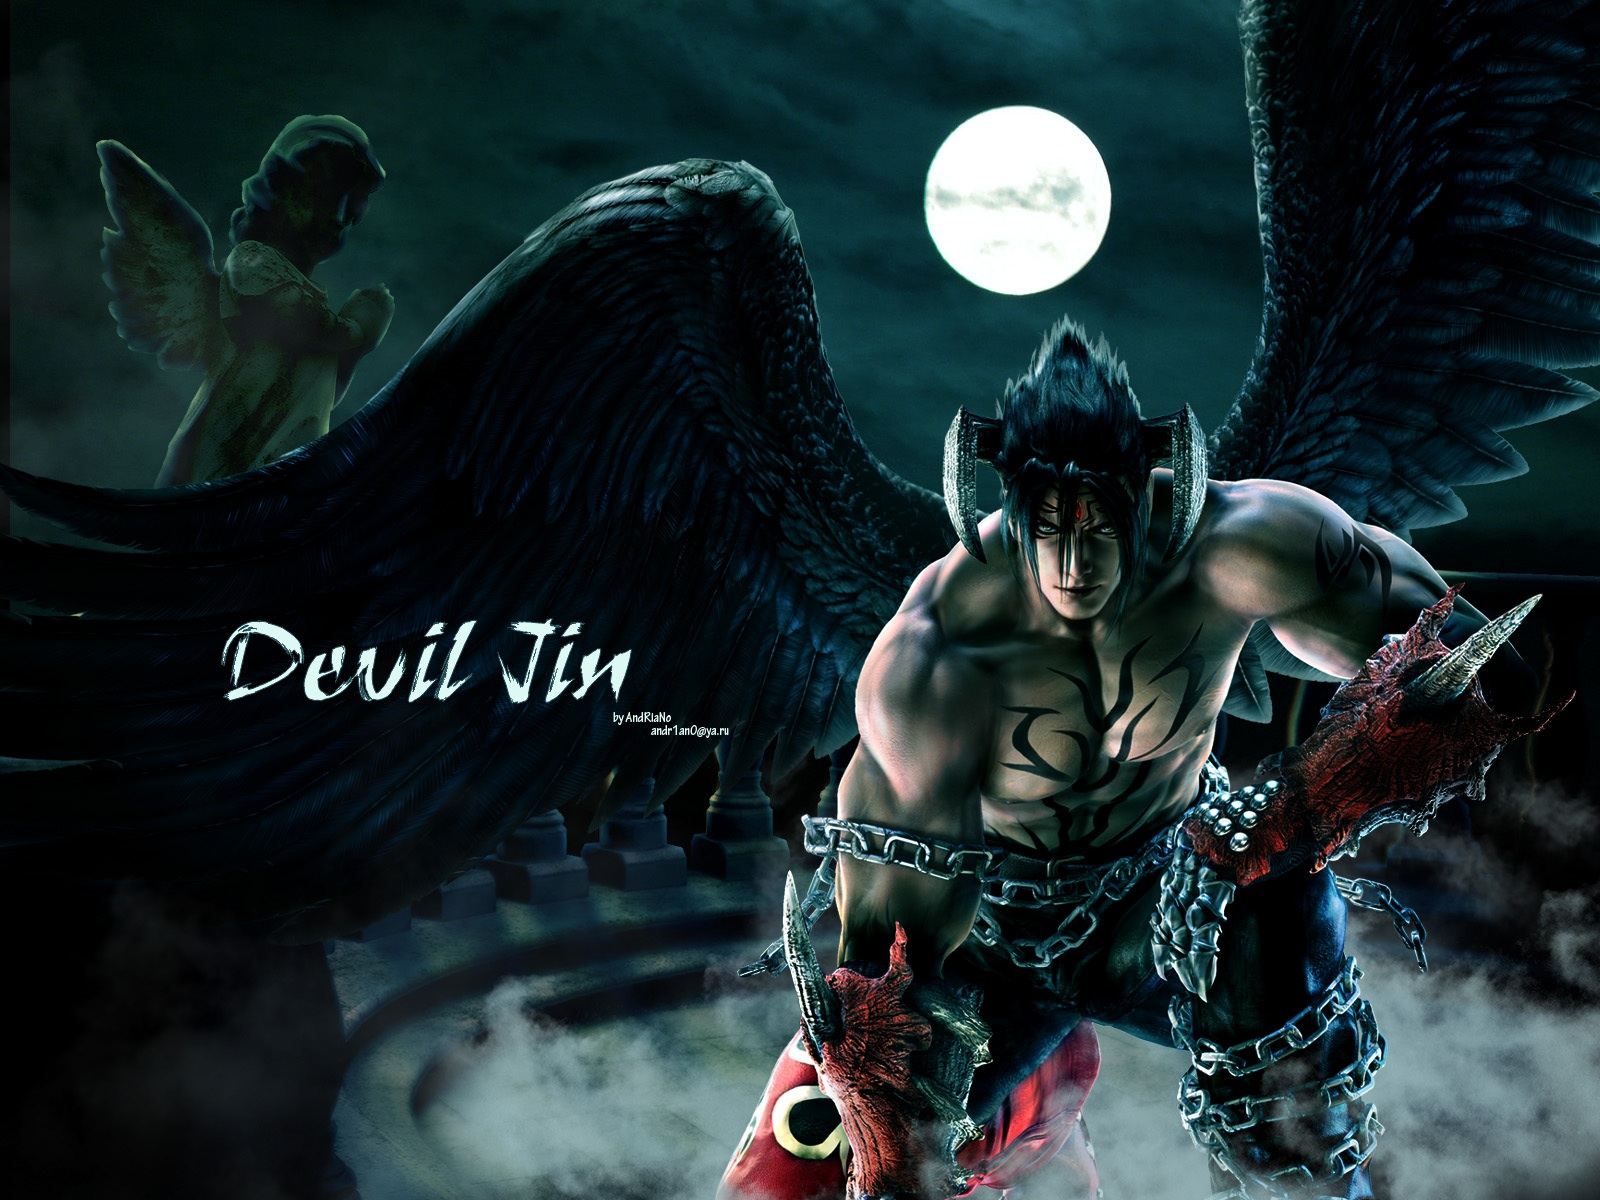 Jin Kazama Images Devil HD Wallpaper And Background Photos